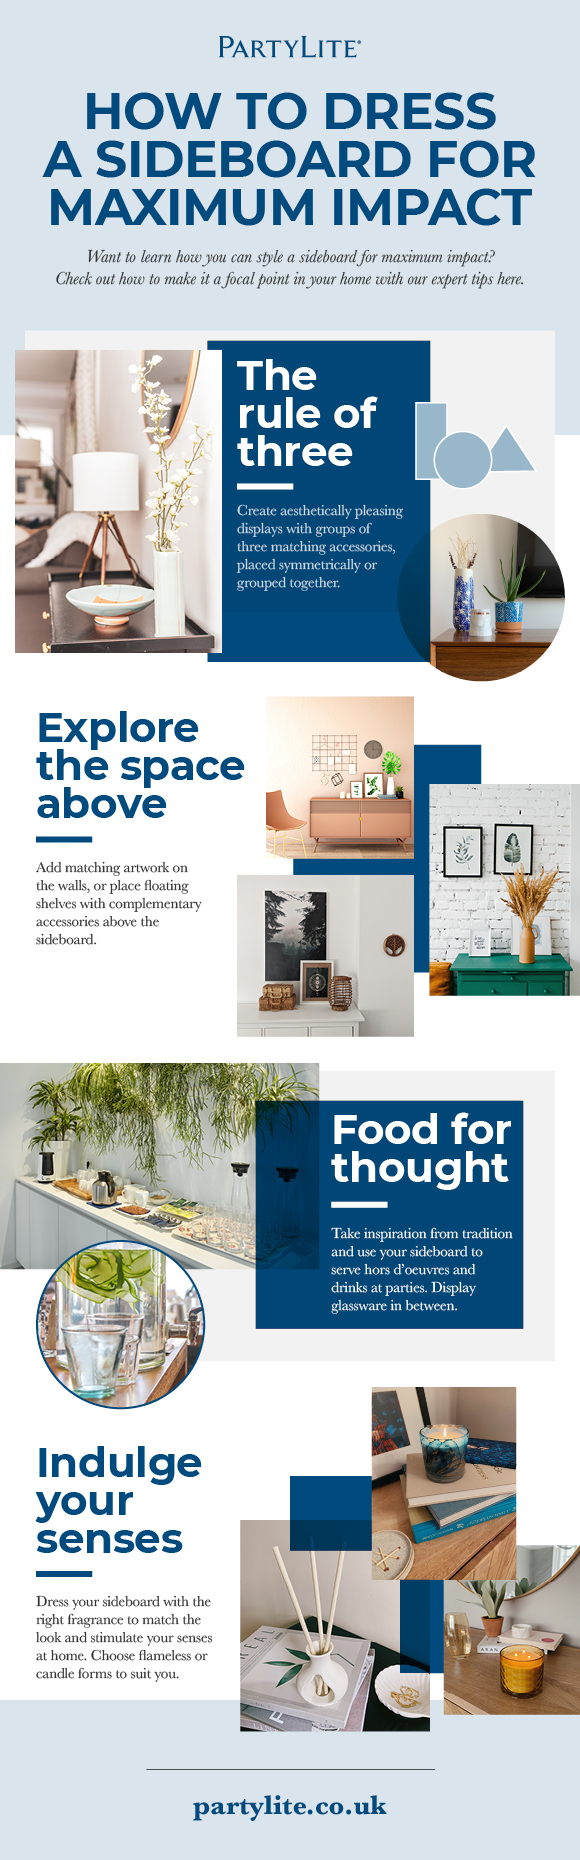 How to Dress a Sideboard for Maximum Impact infographic